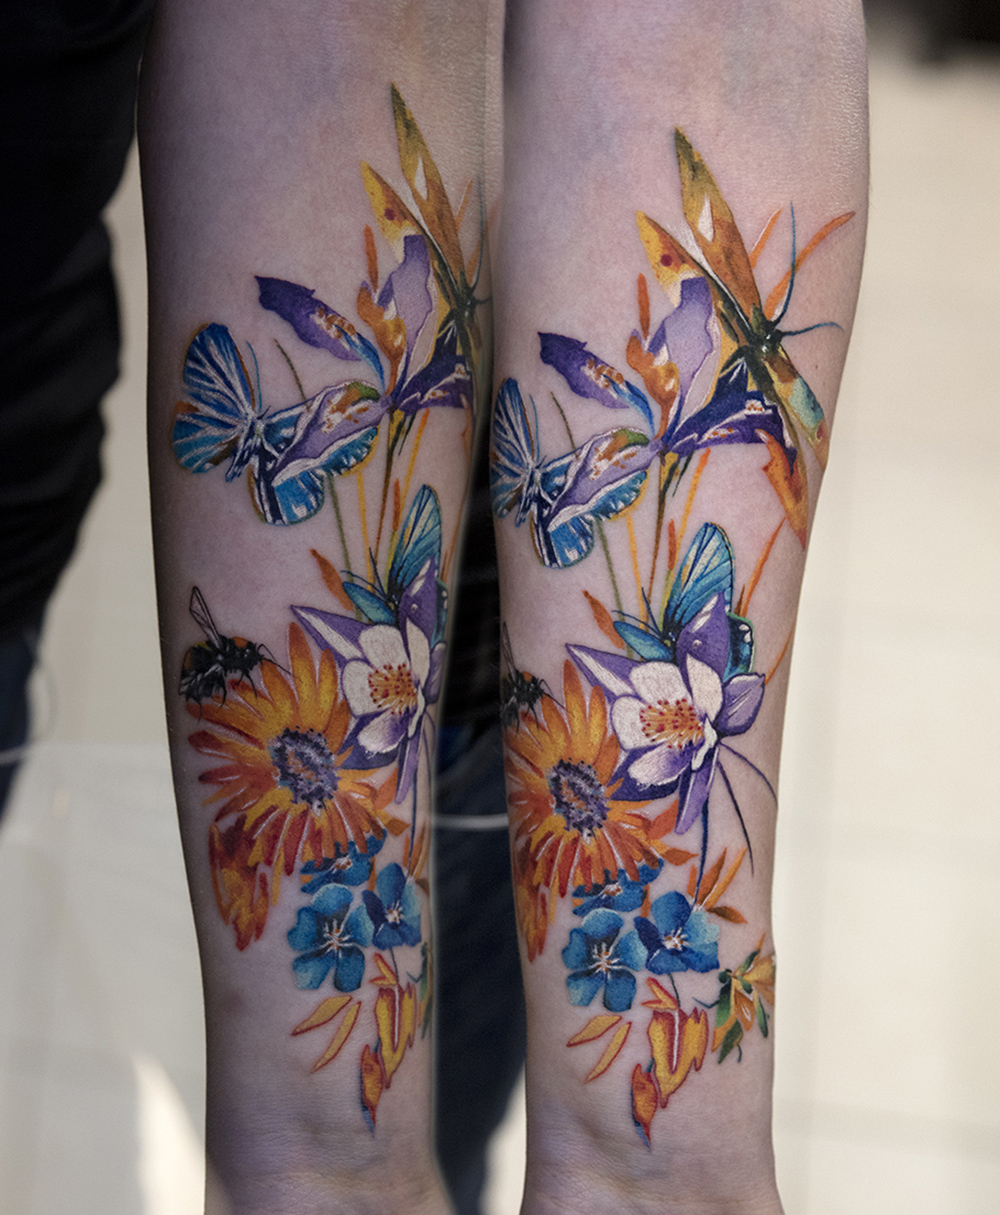 butterfly and flowers tattoo by Mikhail Andersson